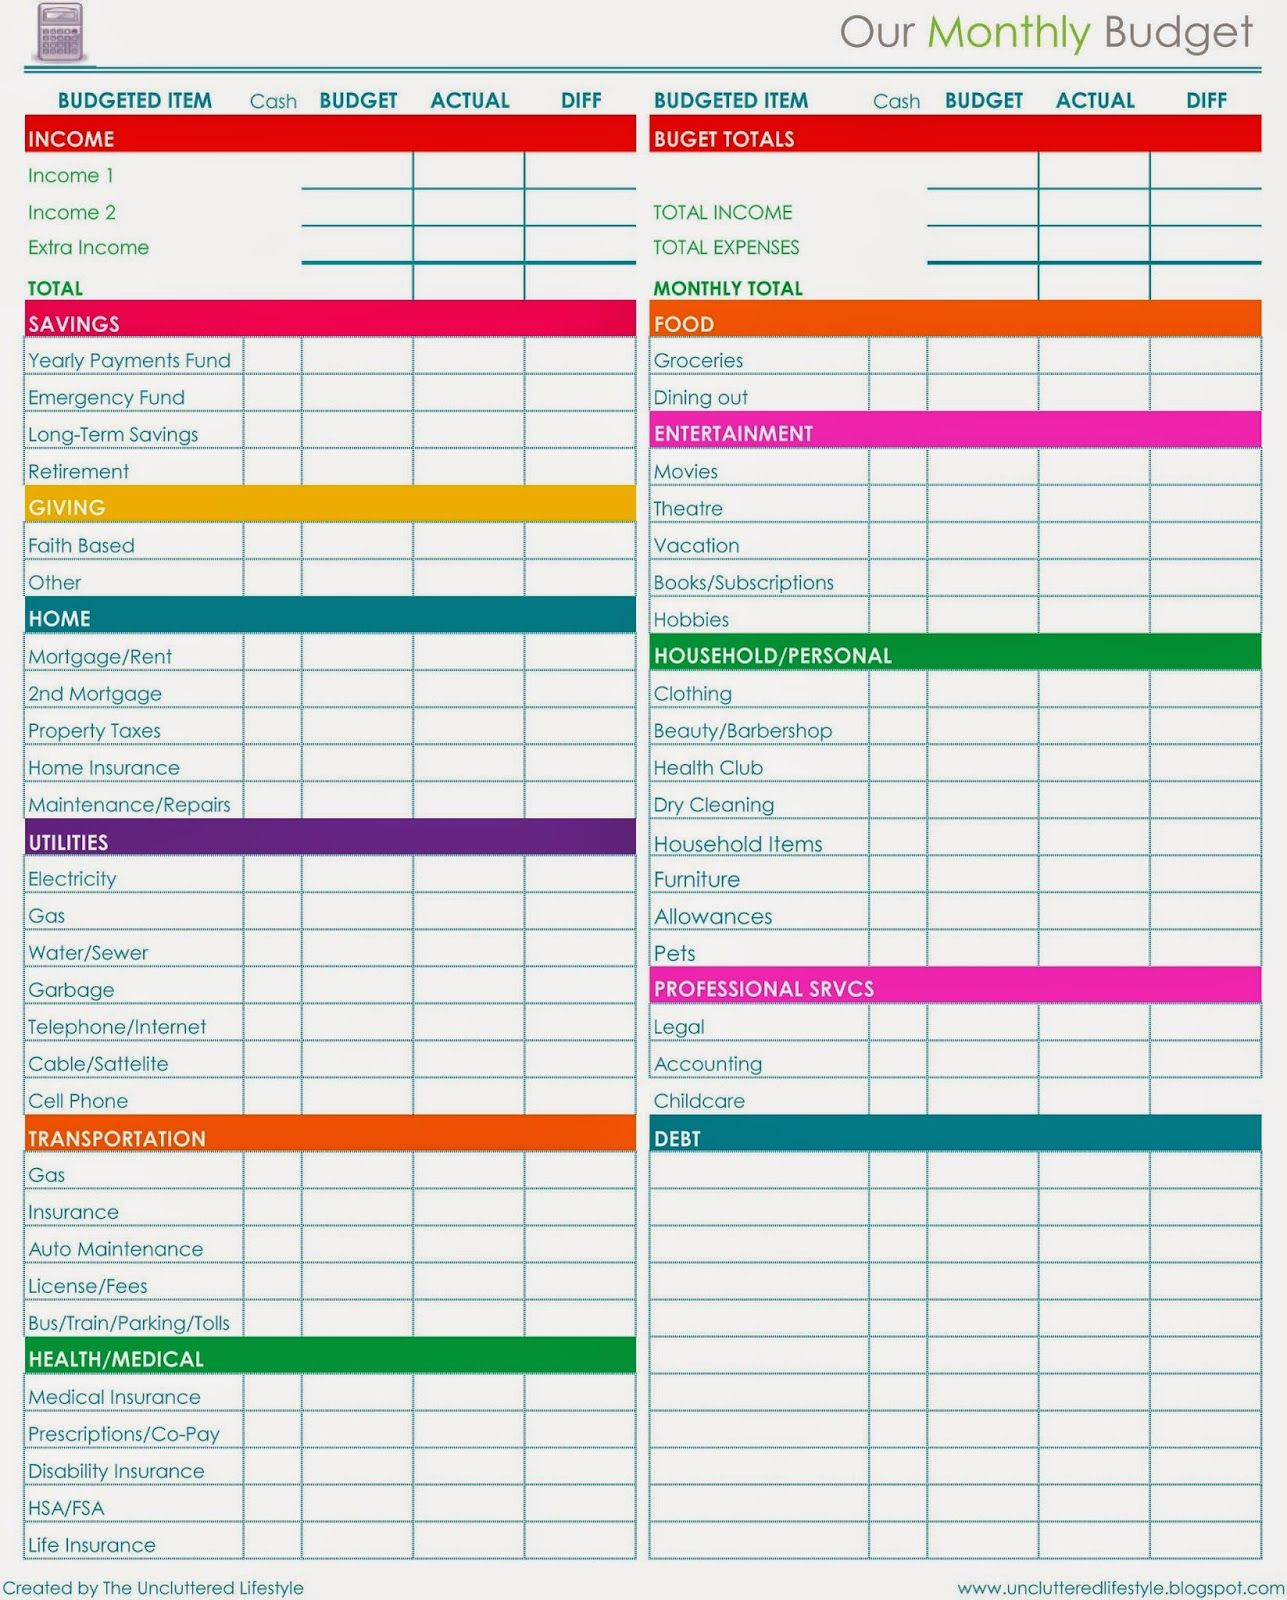 Monthly Budget Ideas From Uncluttered Lifestyle Blog